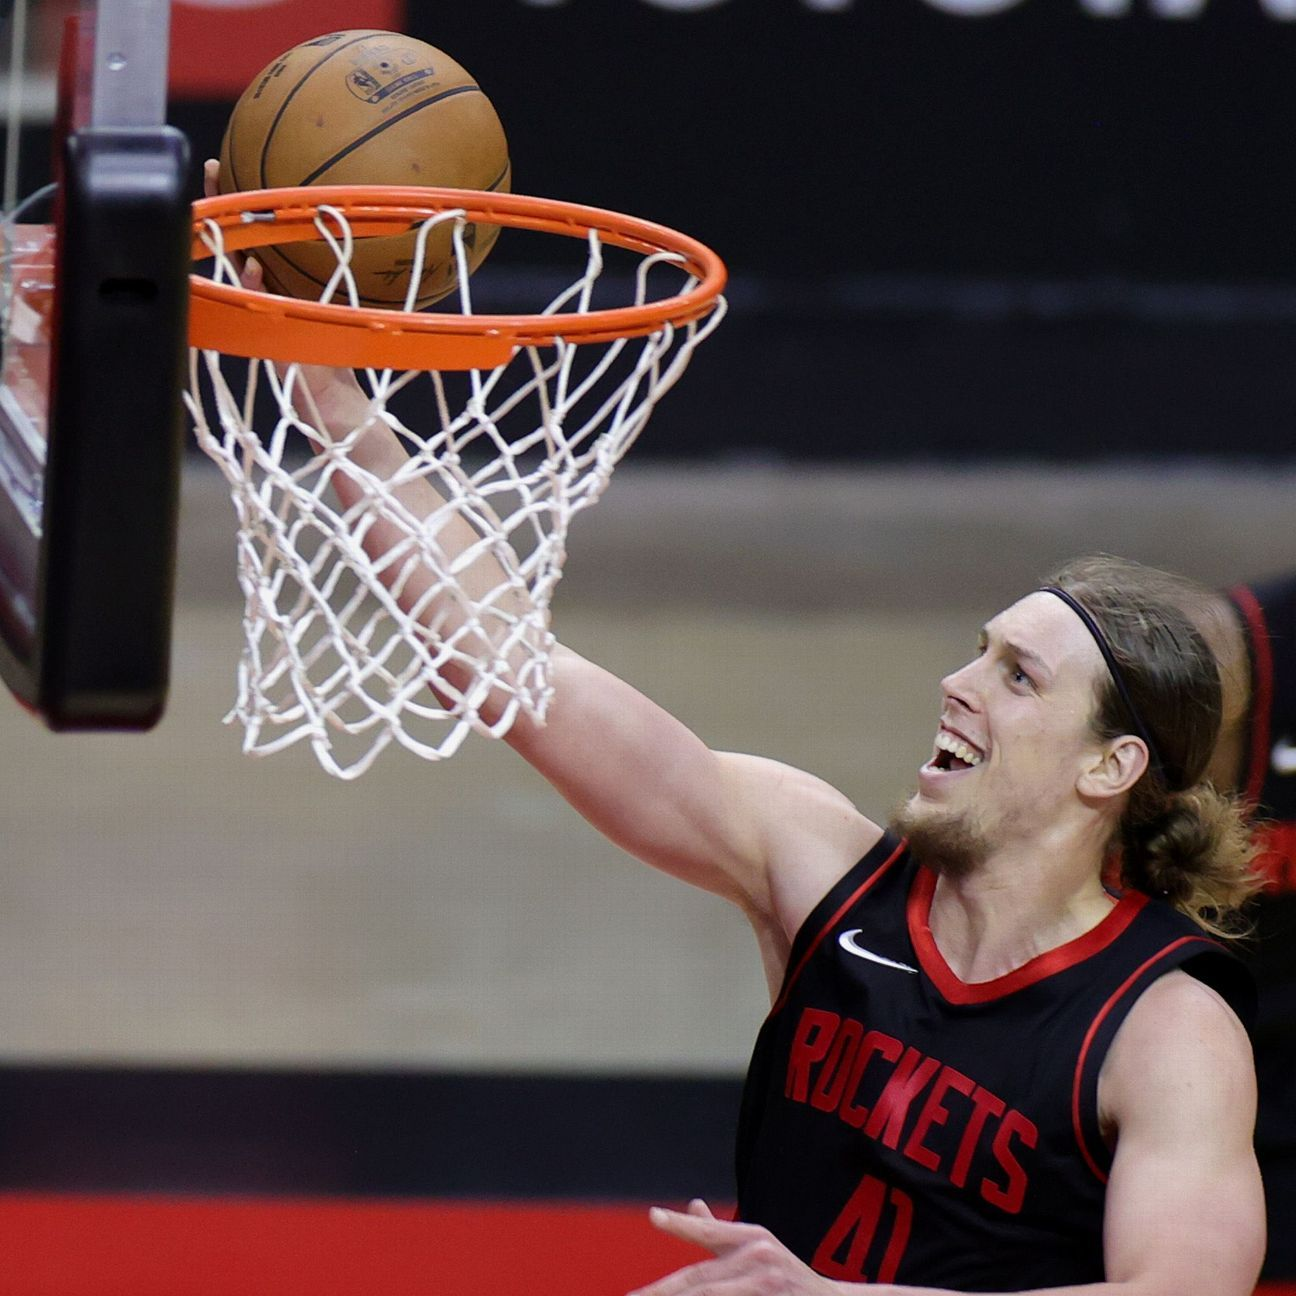 Free agent Kelly Olynyk agrees to three-year, $37 million deal with Detroit Pistons, agent says